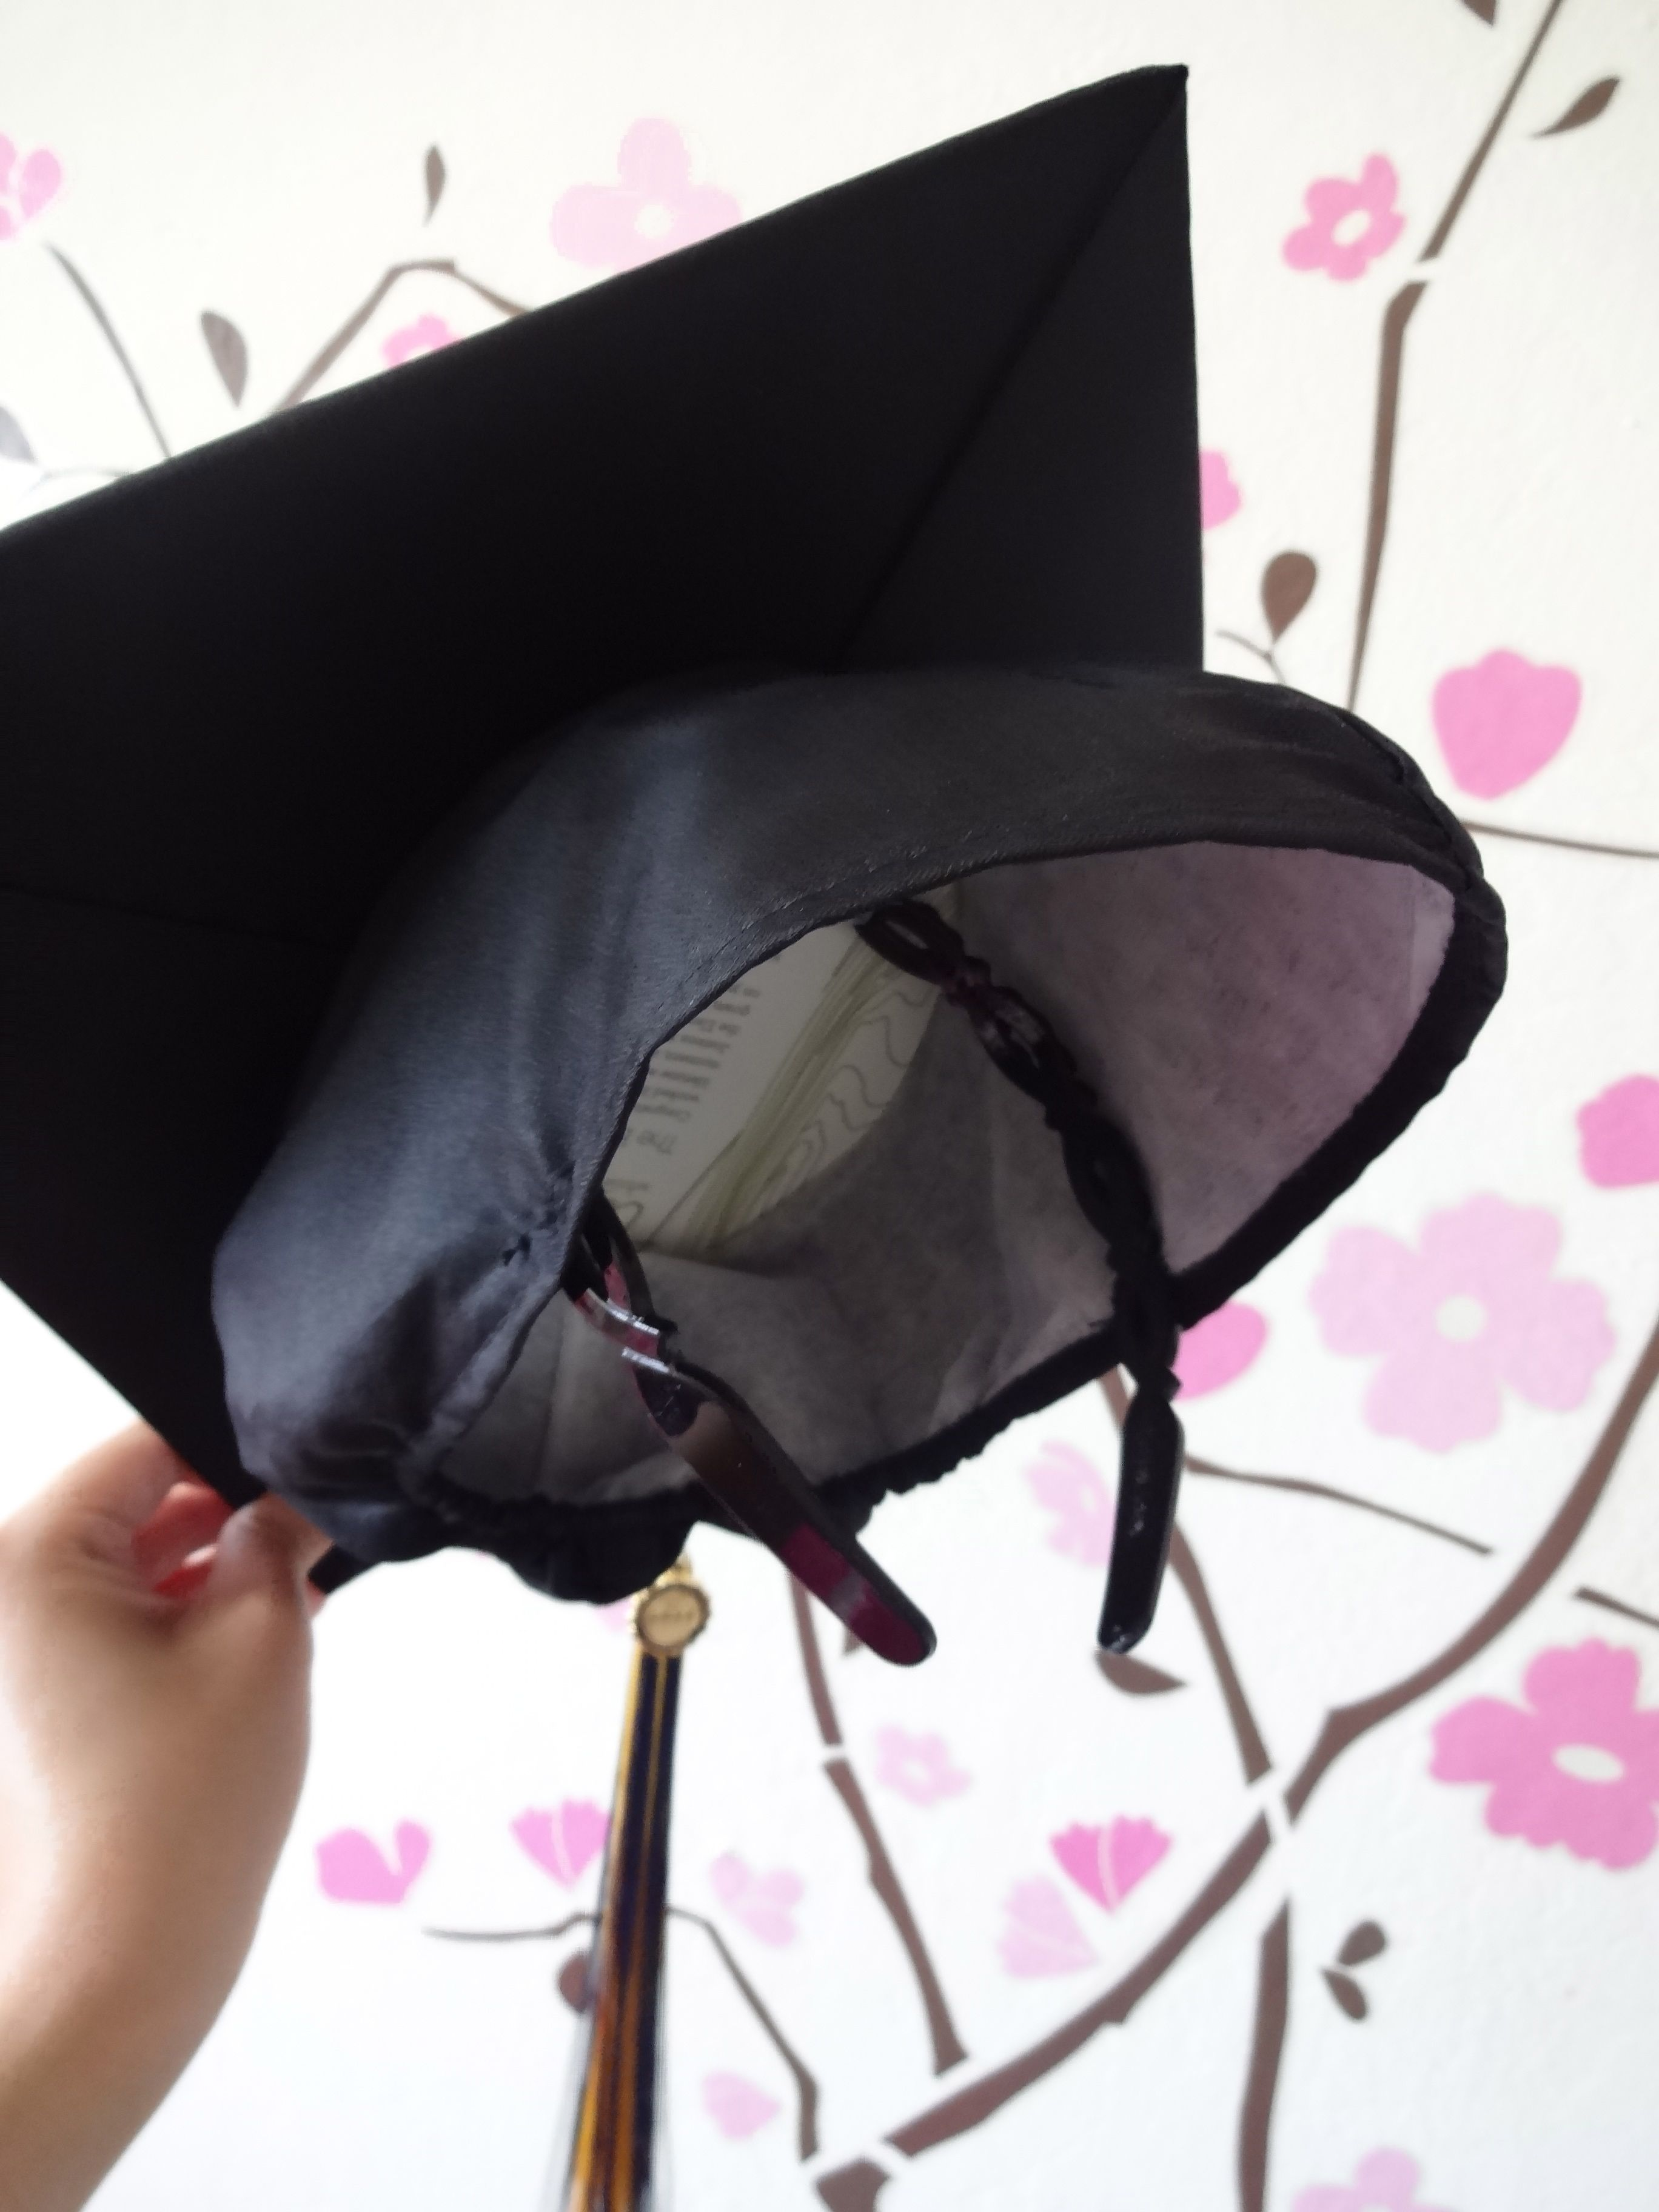 Pics photos how to draw a graduation hat - A Simple Solution To Keep Your Graduation Cap From Falling Off Tape Or Sew On